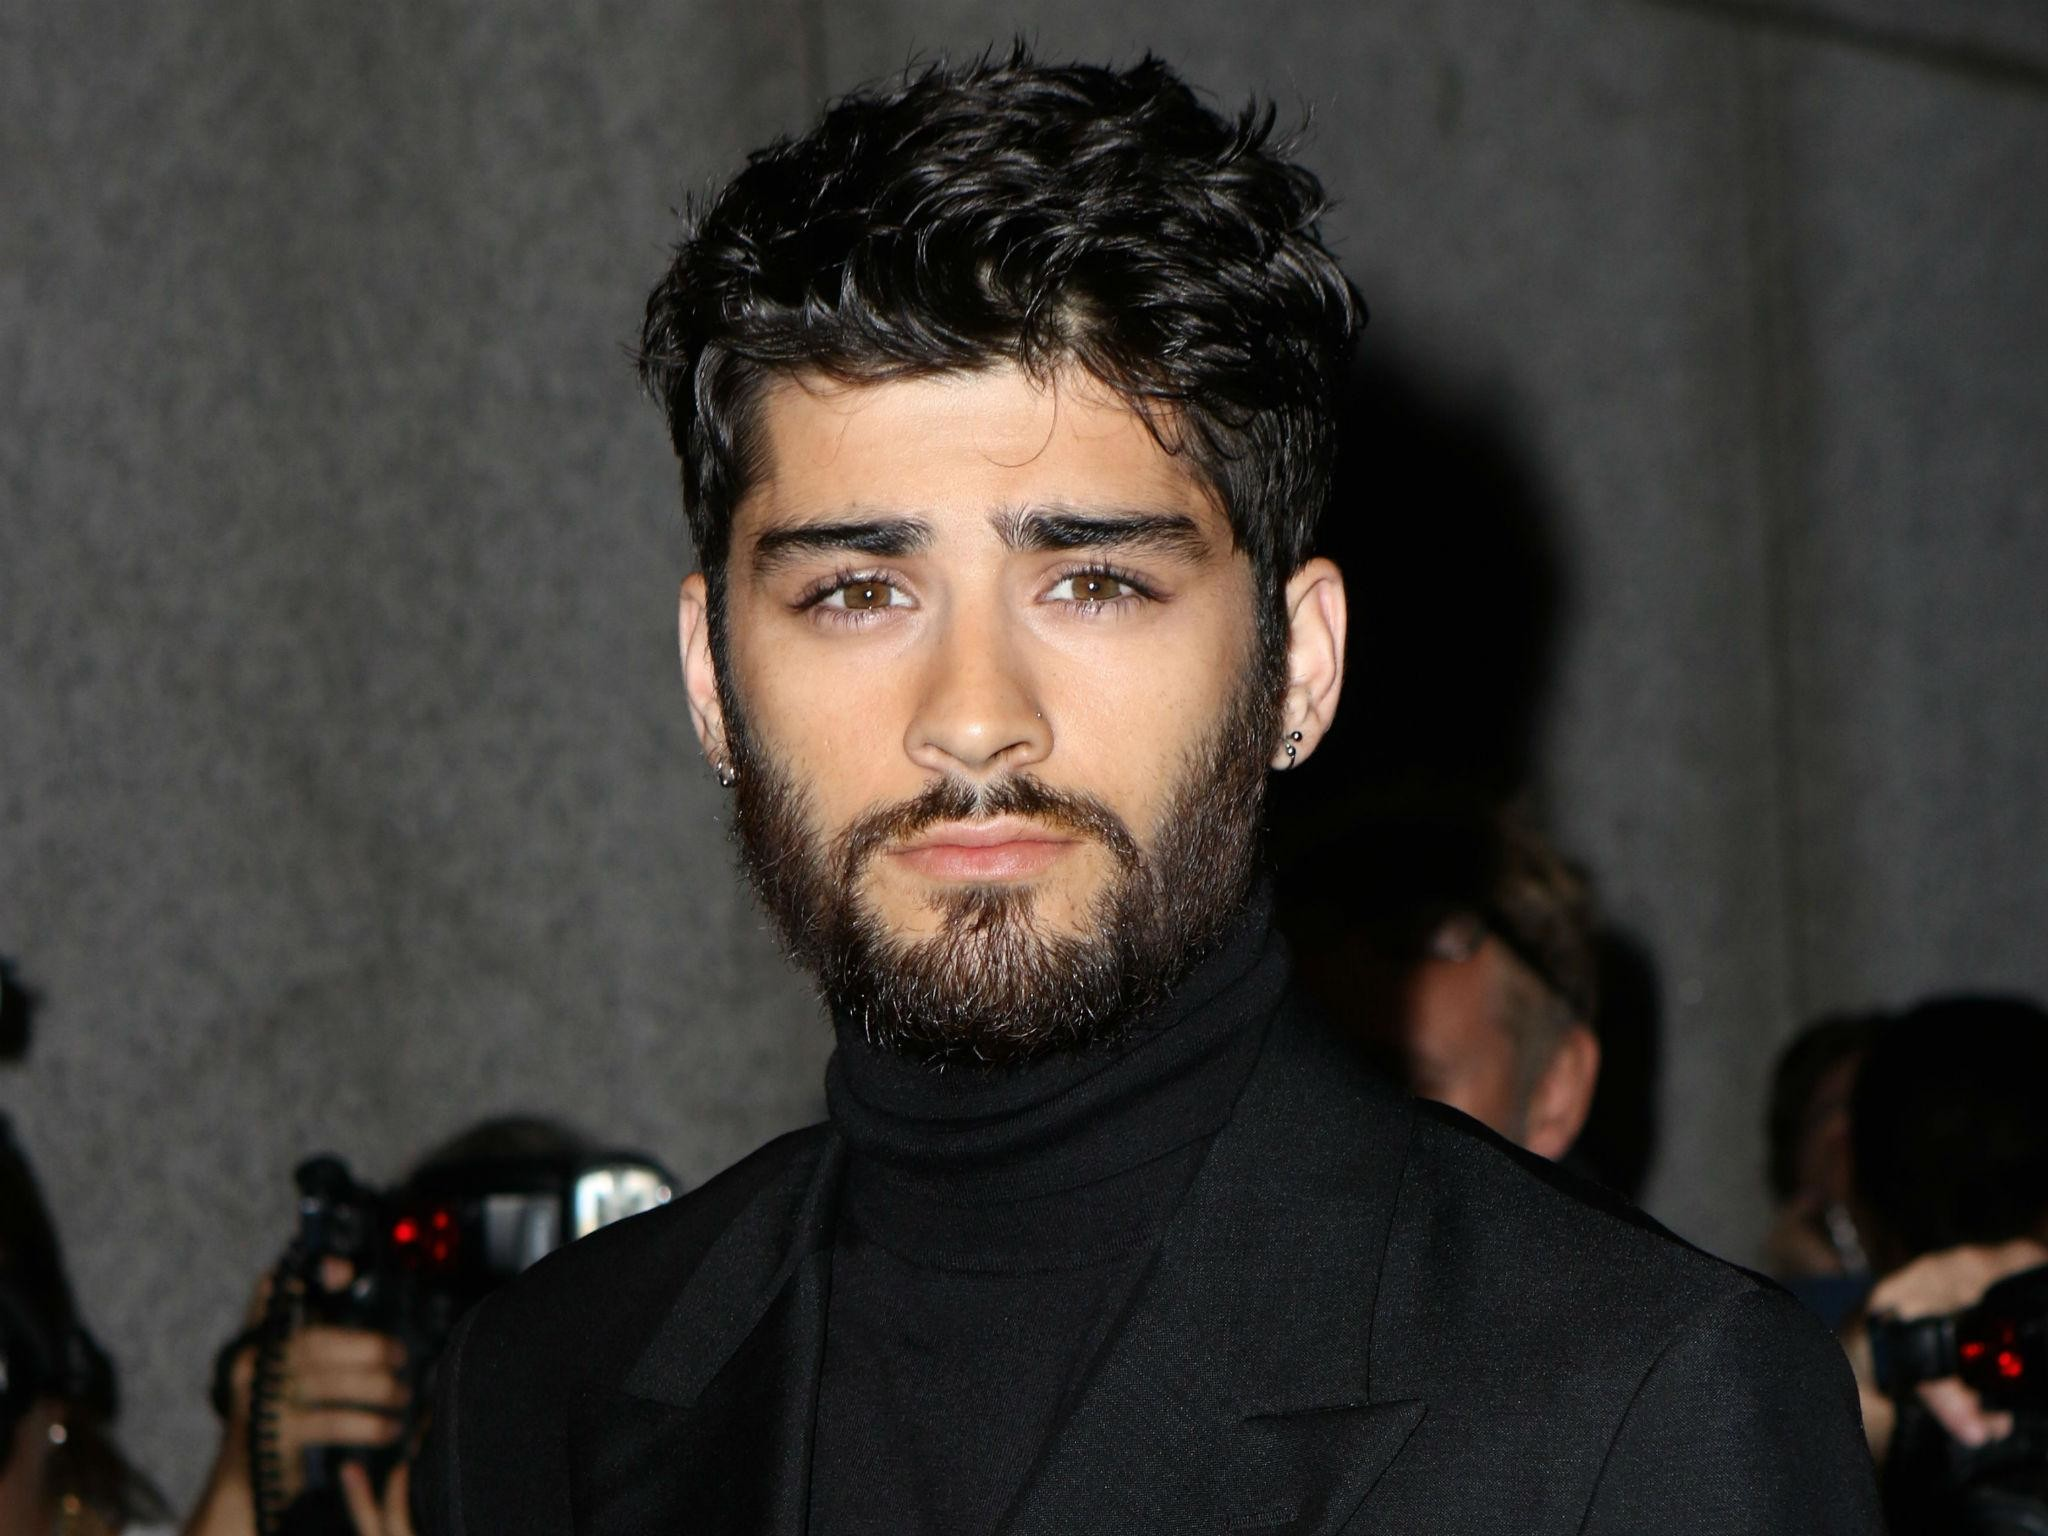 Zayn Malik interrogated for three hours at US airport because 'his name was  flagged up on the system' | The Independent